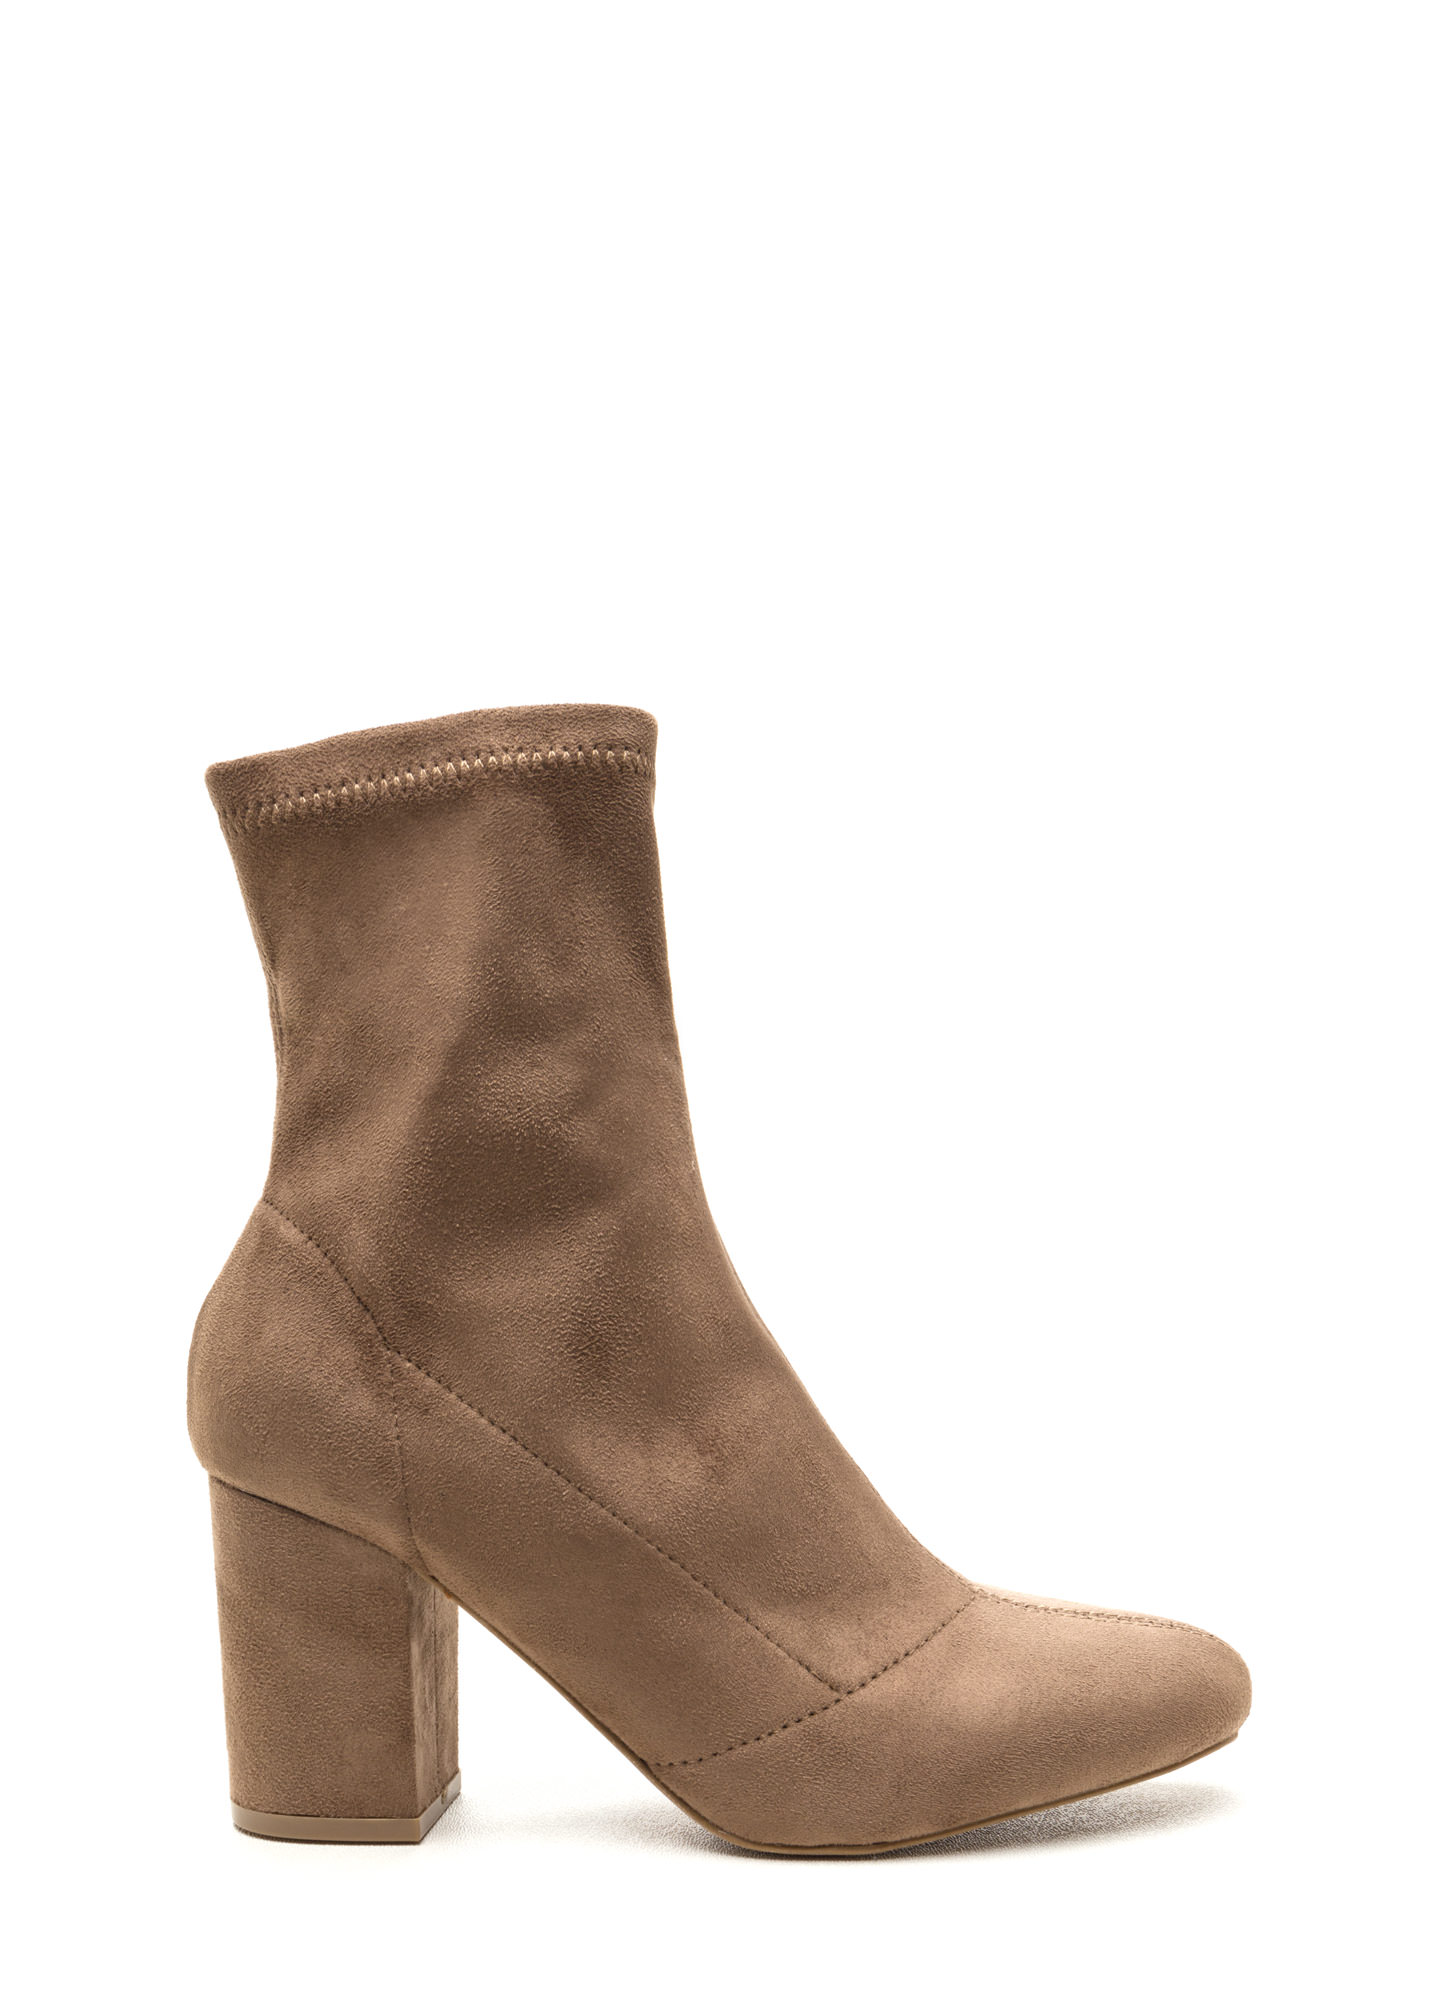 All My Days Faux Suede Chunky Booties TAUPE